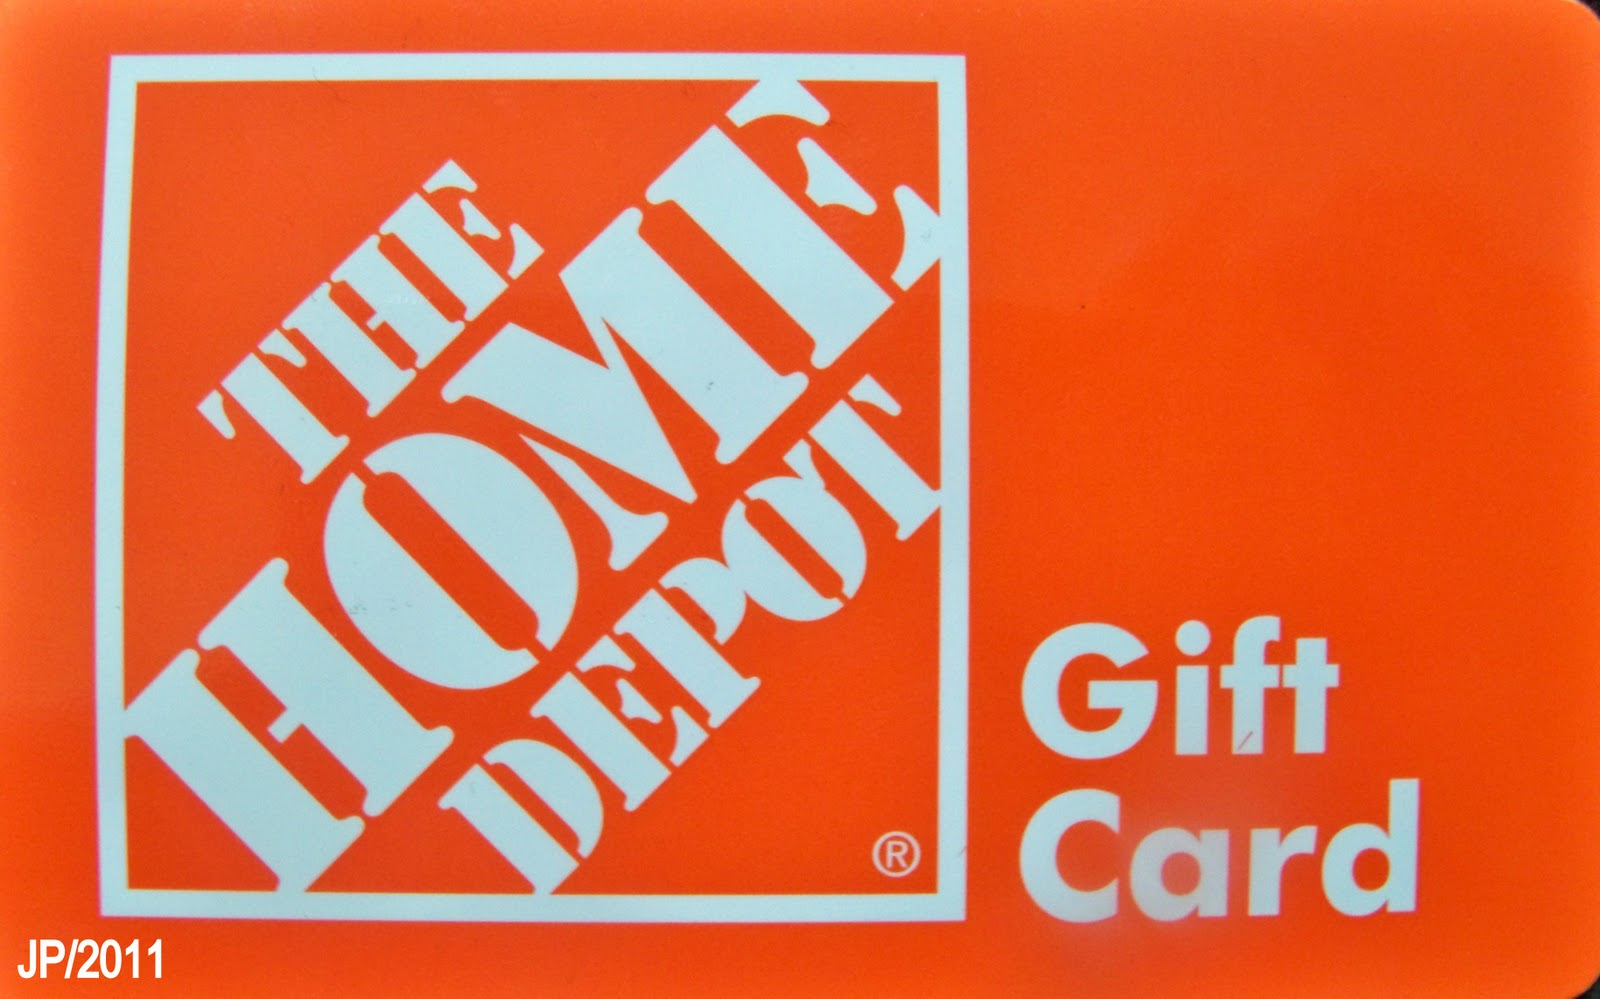 HOME DEPOT Gift Card The Home Depot Building Materials Improvement Warehouse Store Moultrie Georgia